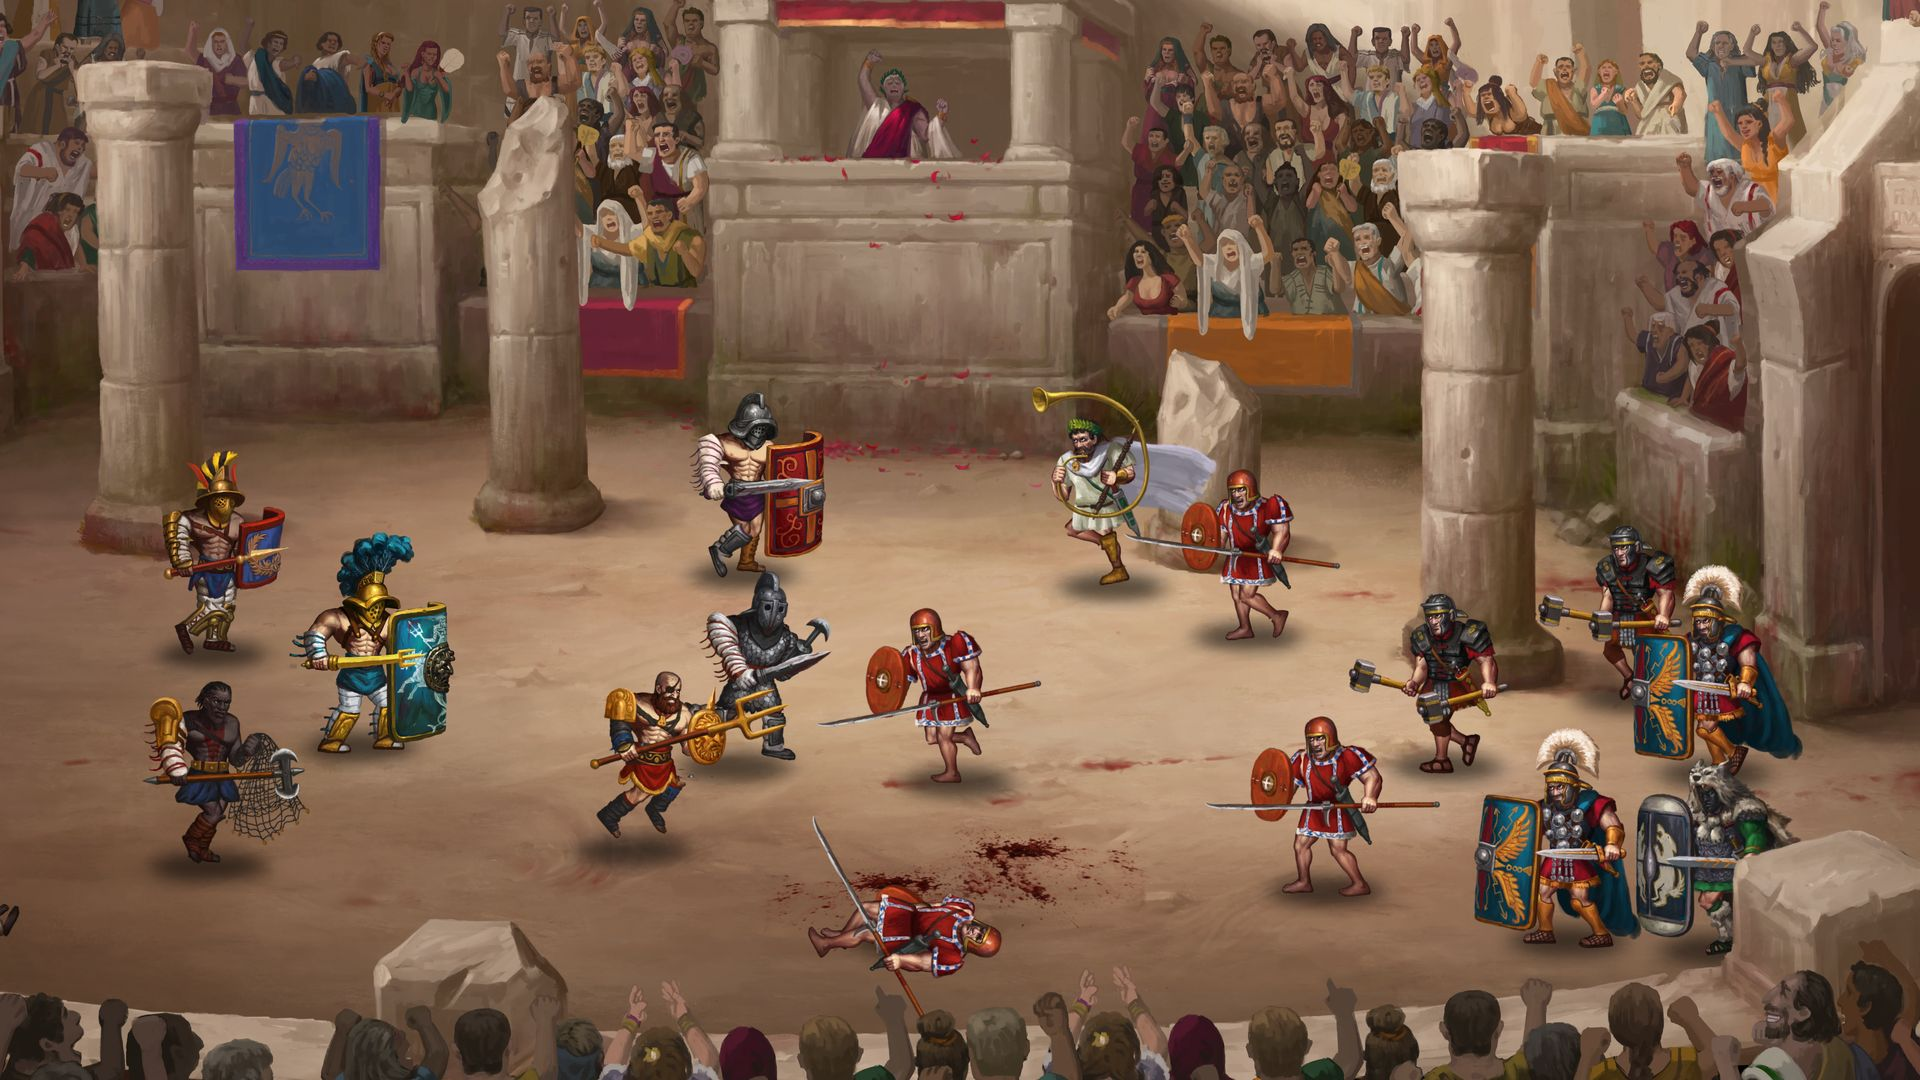 Story of a Gladiator – Colosseum